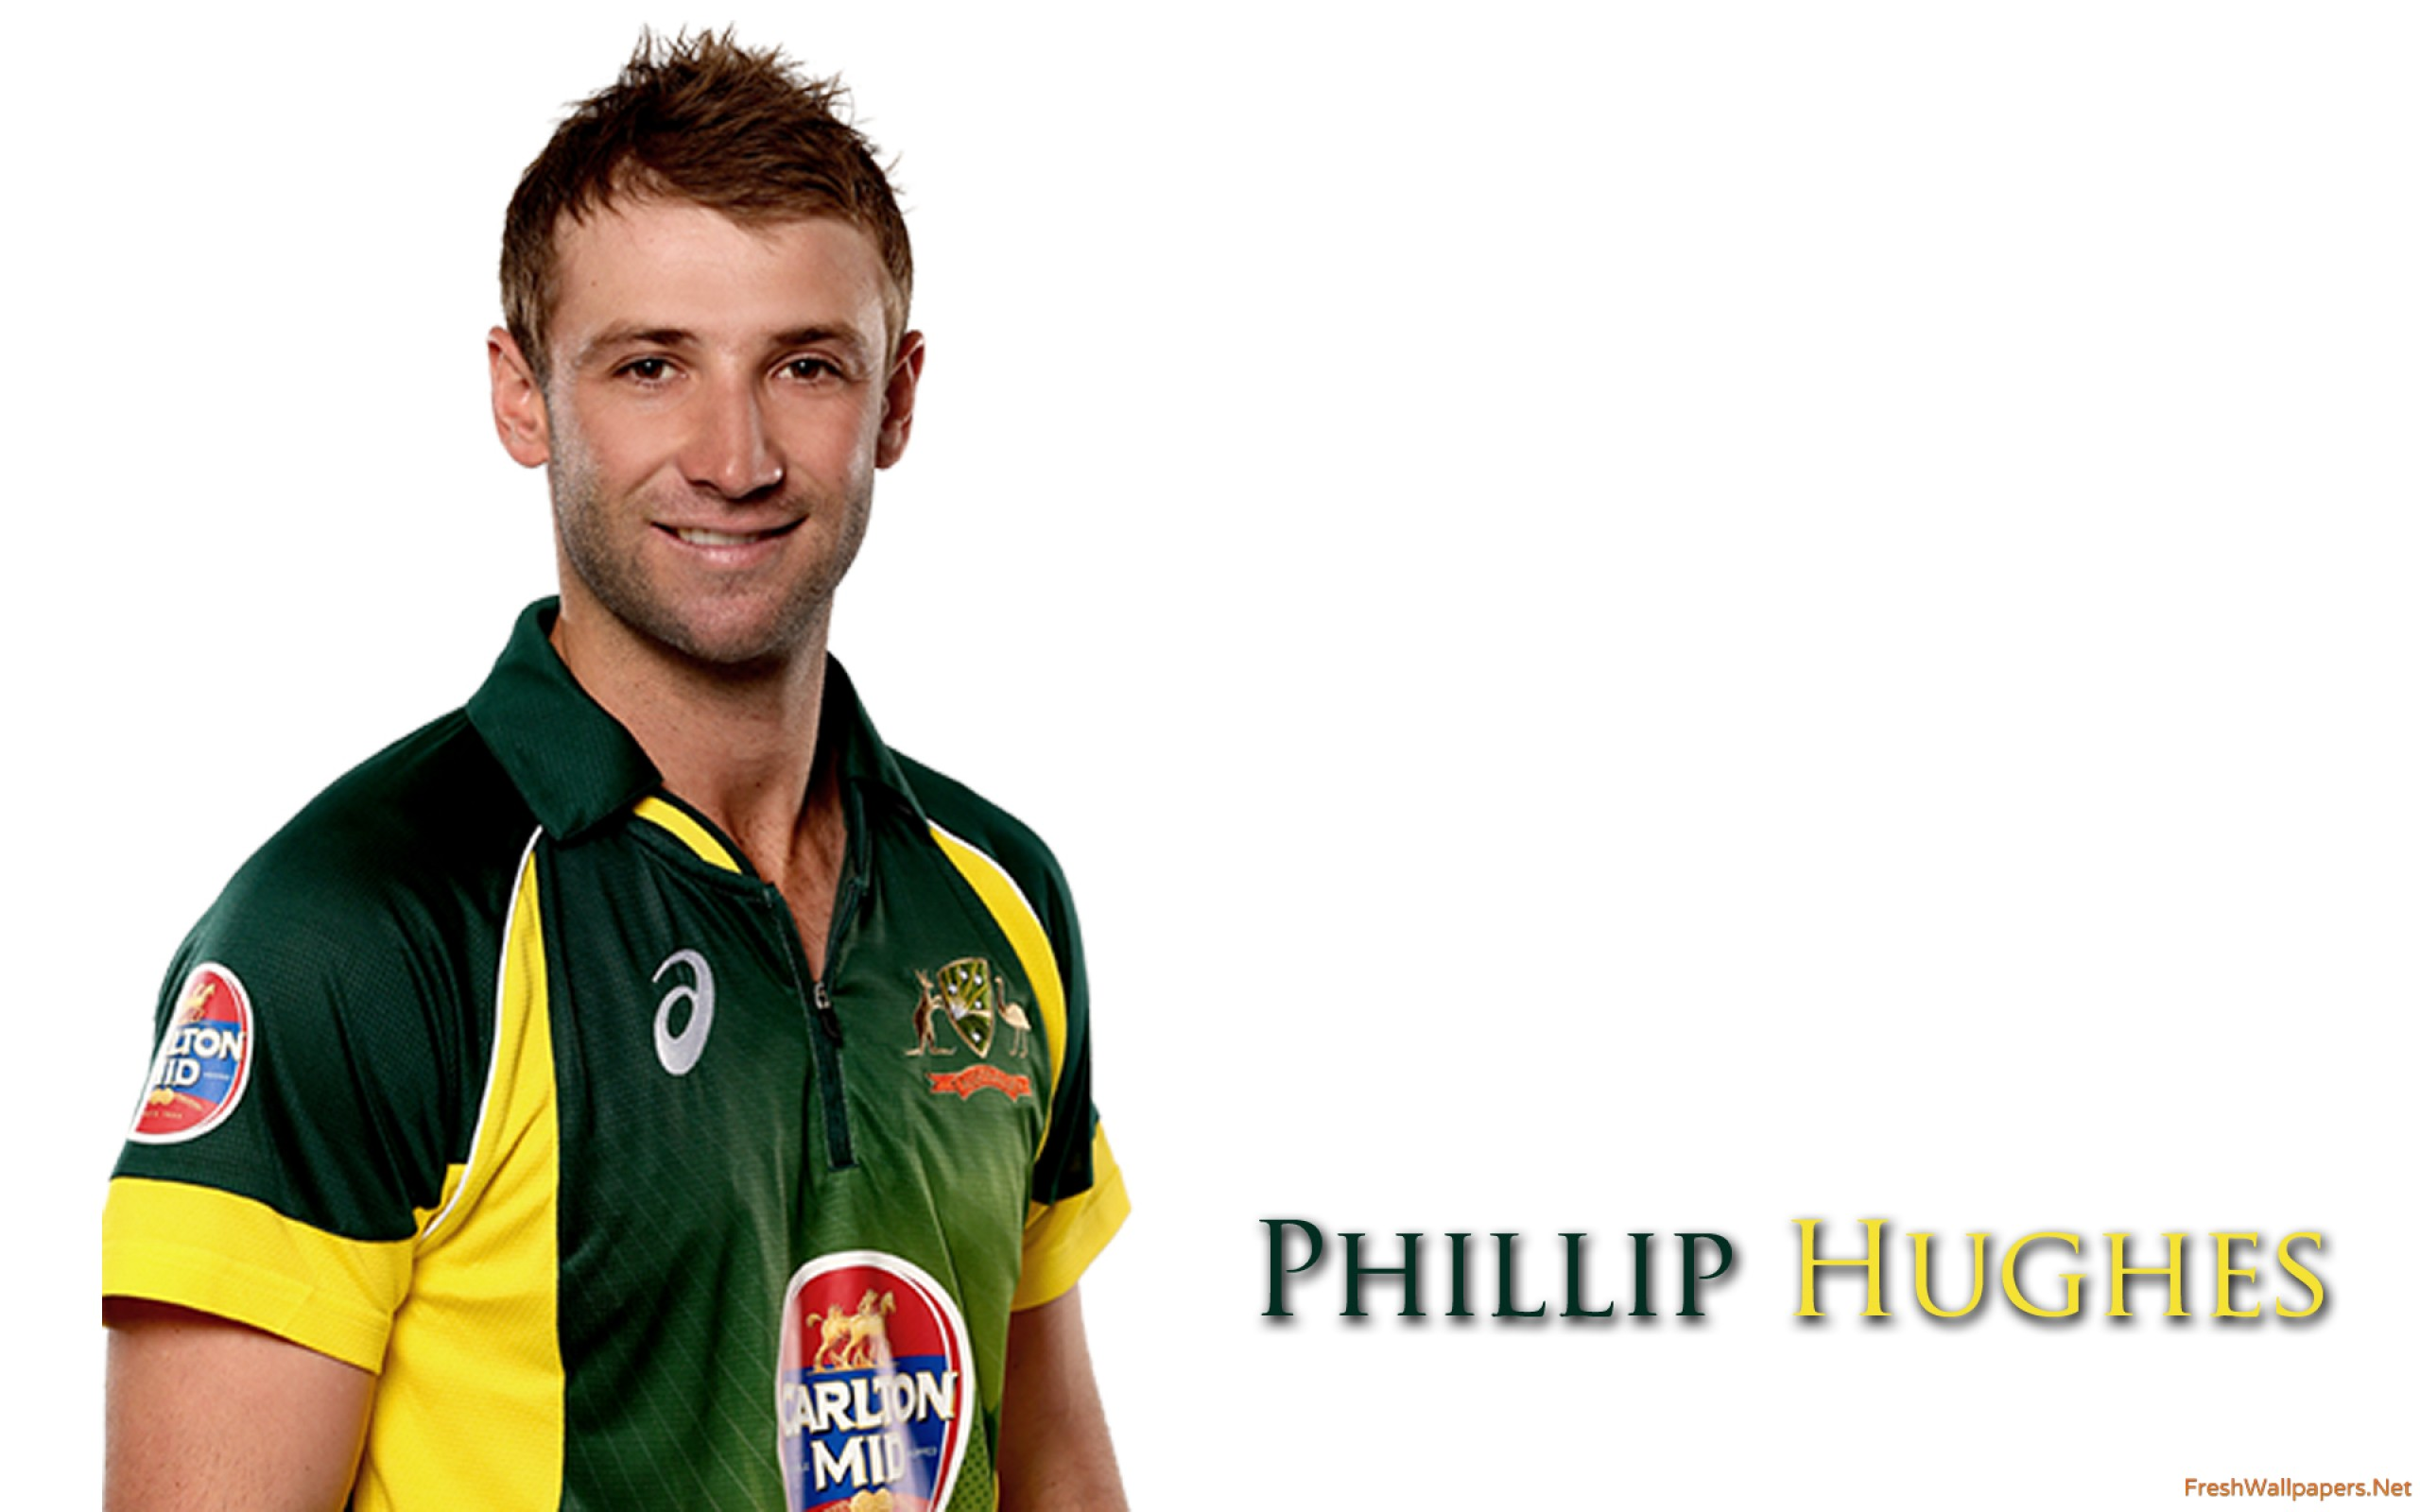 2560x1600 - Phillip Hughes Wallpapers 27